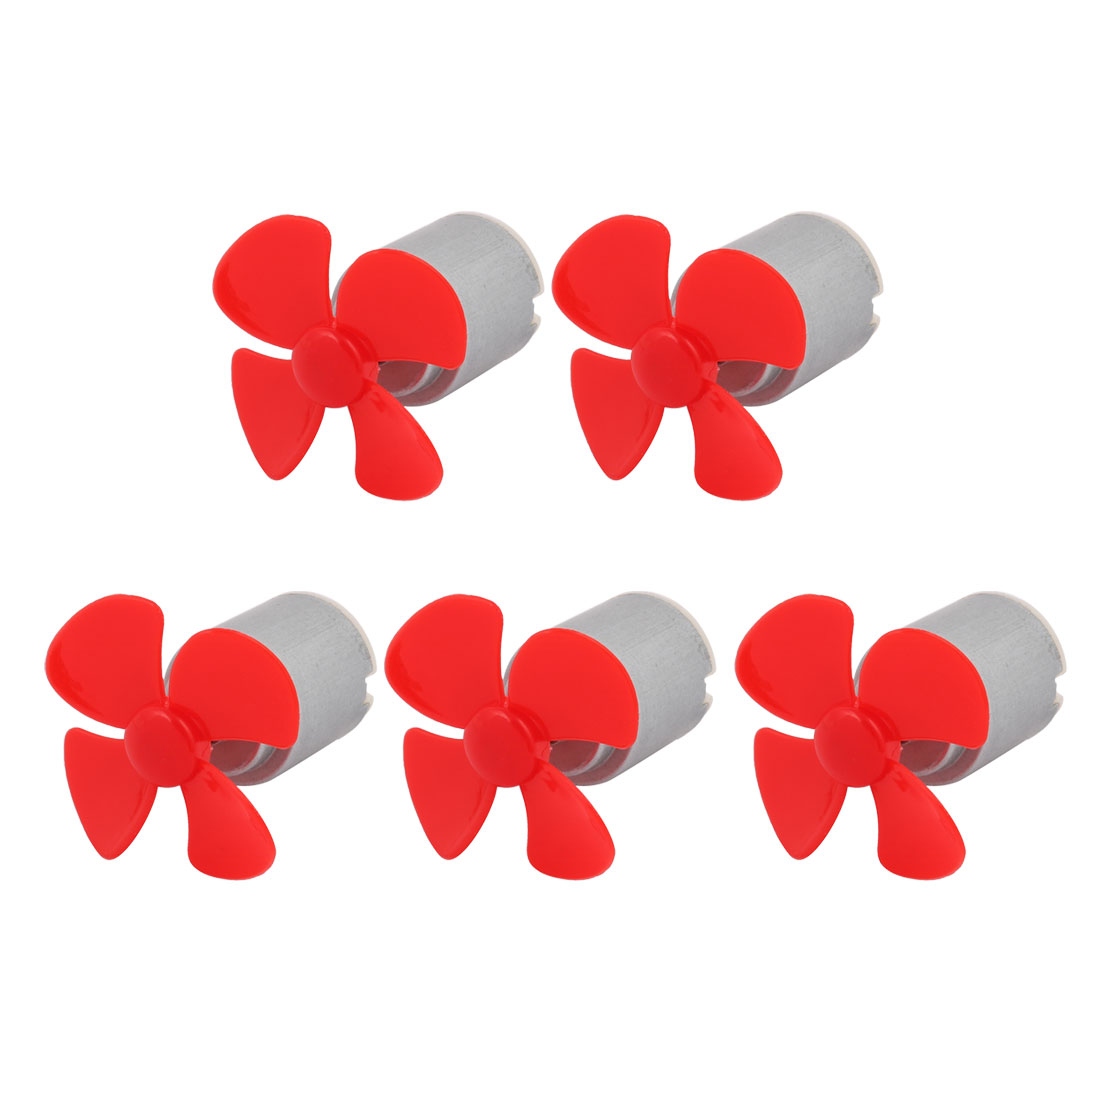 5pcs DC 3V 0.13A 16500RPM Red Strong Force Motor 4 Vanes 40mm Propeller for RC Aircraft